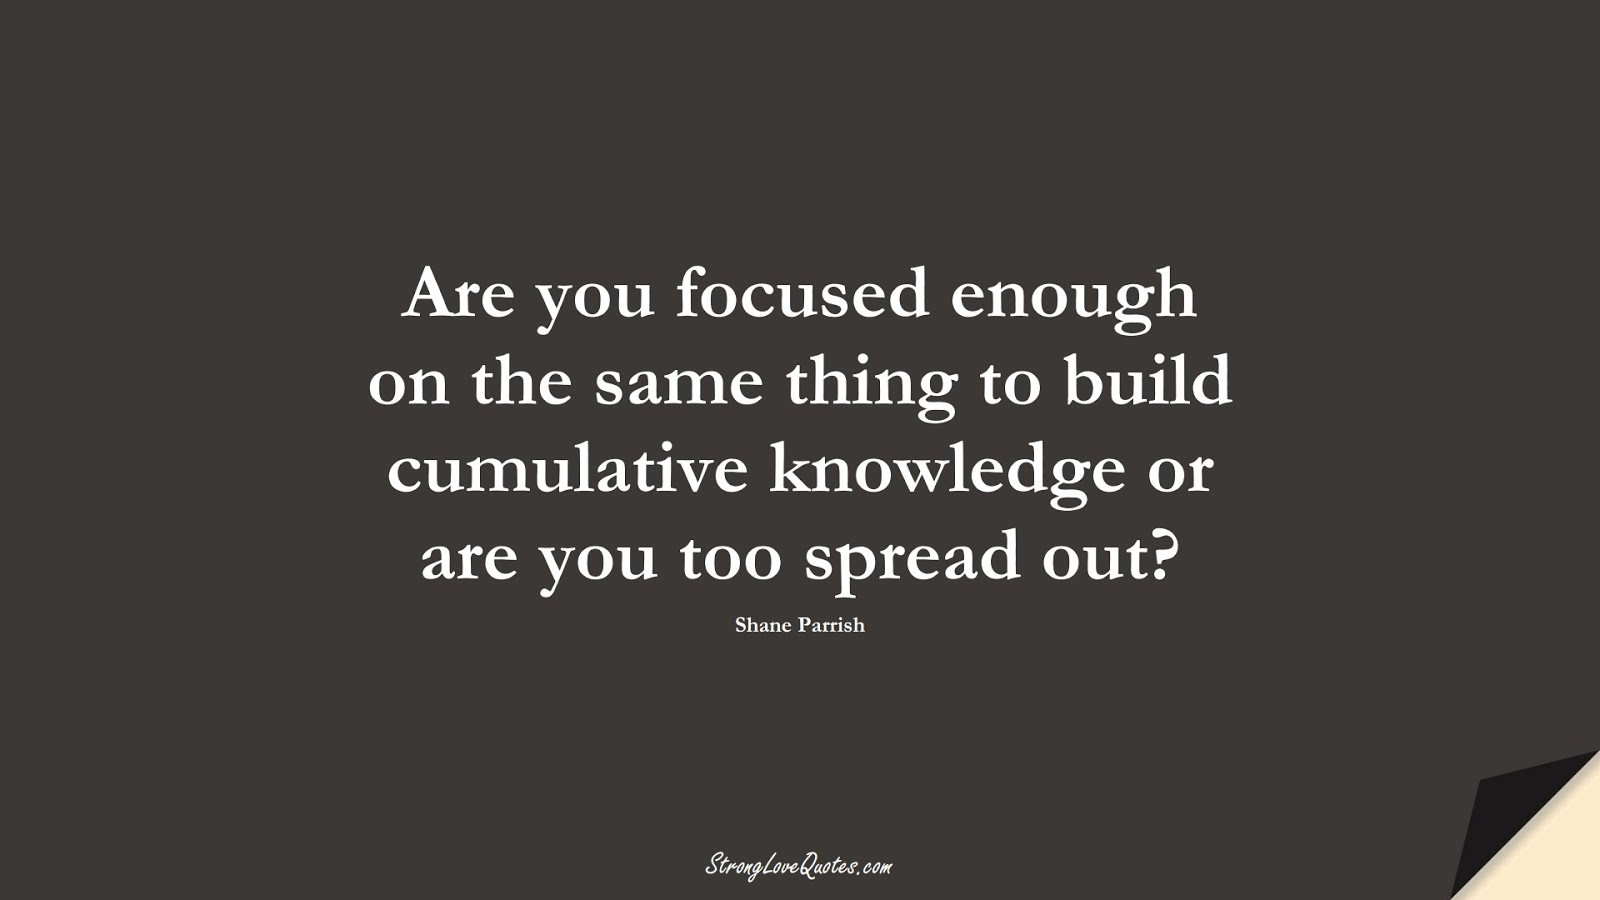 Are you focused enough on the same thing to build cumulative knowledge or are you too spread out? (Shane Parrish);  #KnowledgeQuotes